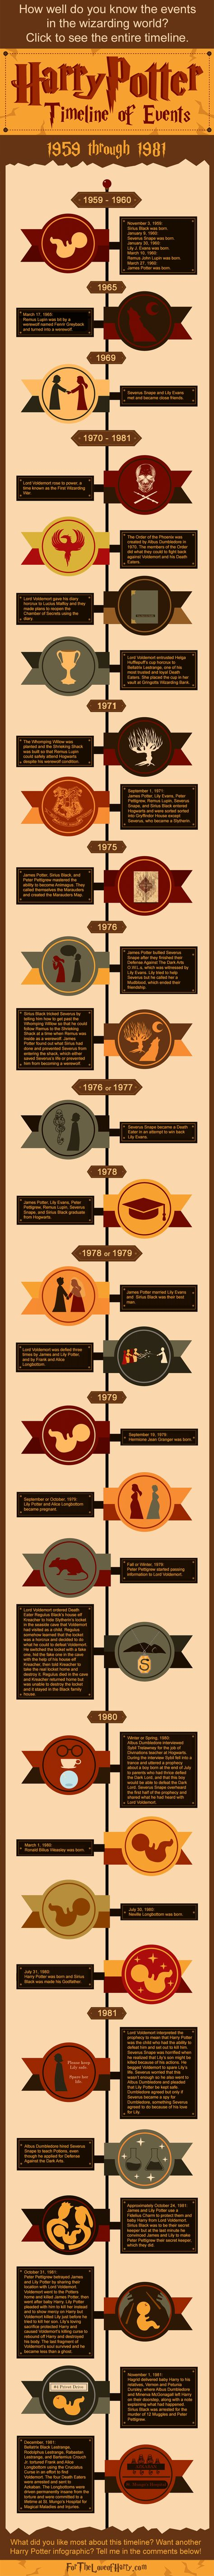 This Harry Potter infographic details events that happened in the